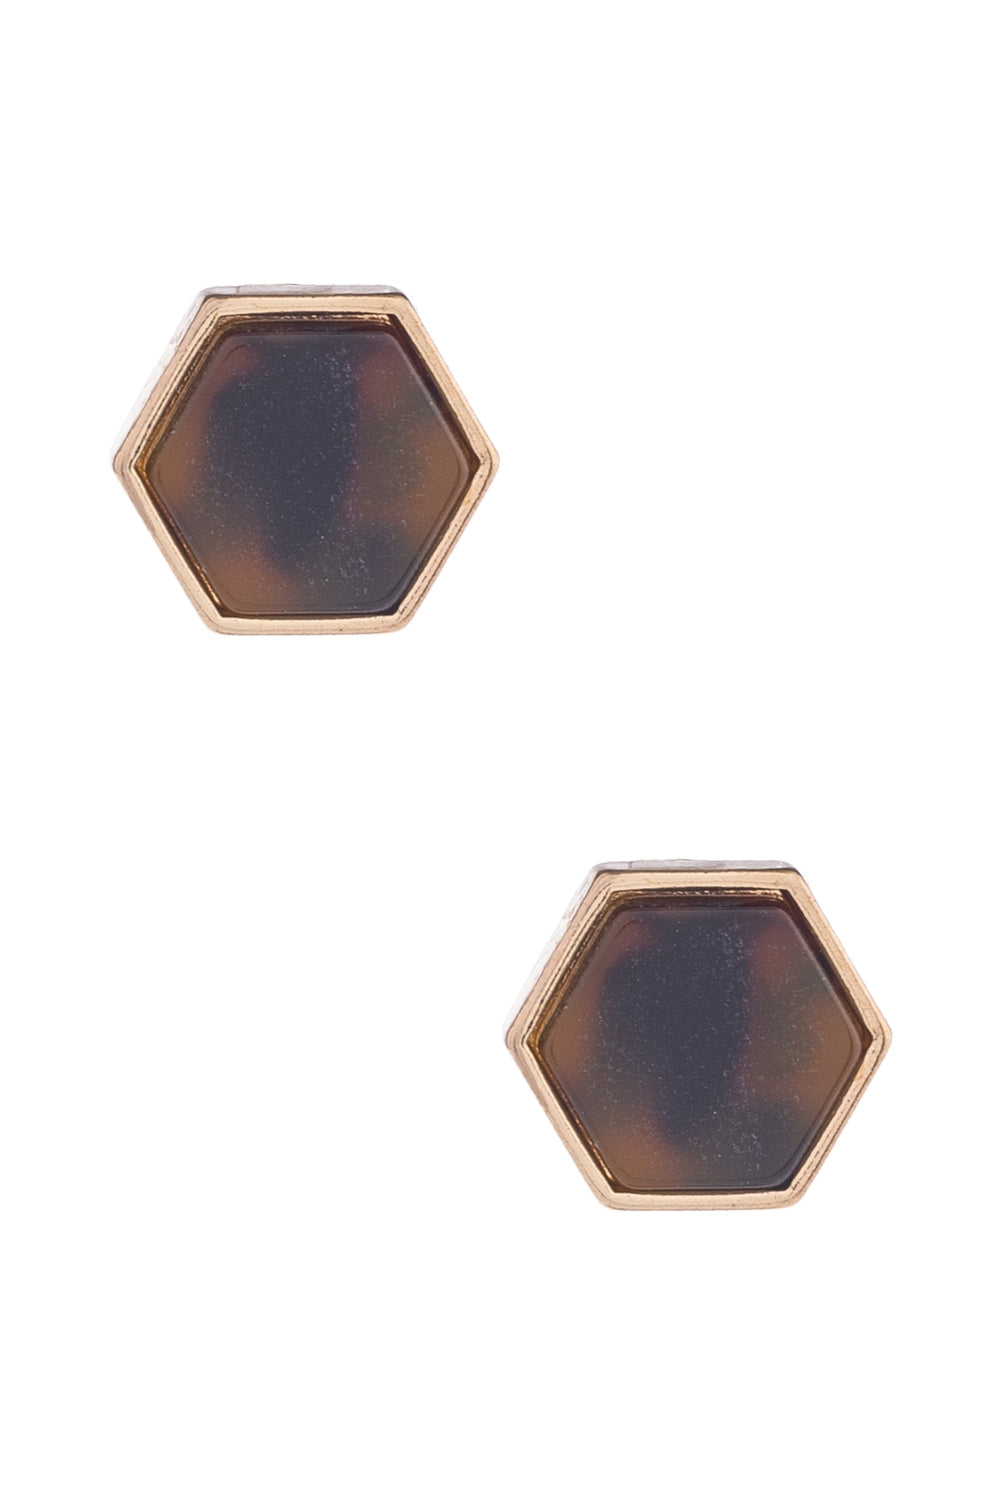 Type 3 Golden Honey Earrings